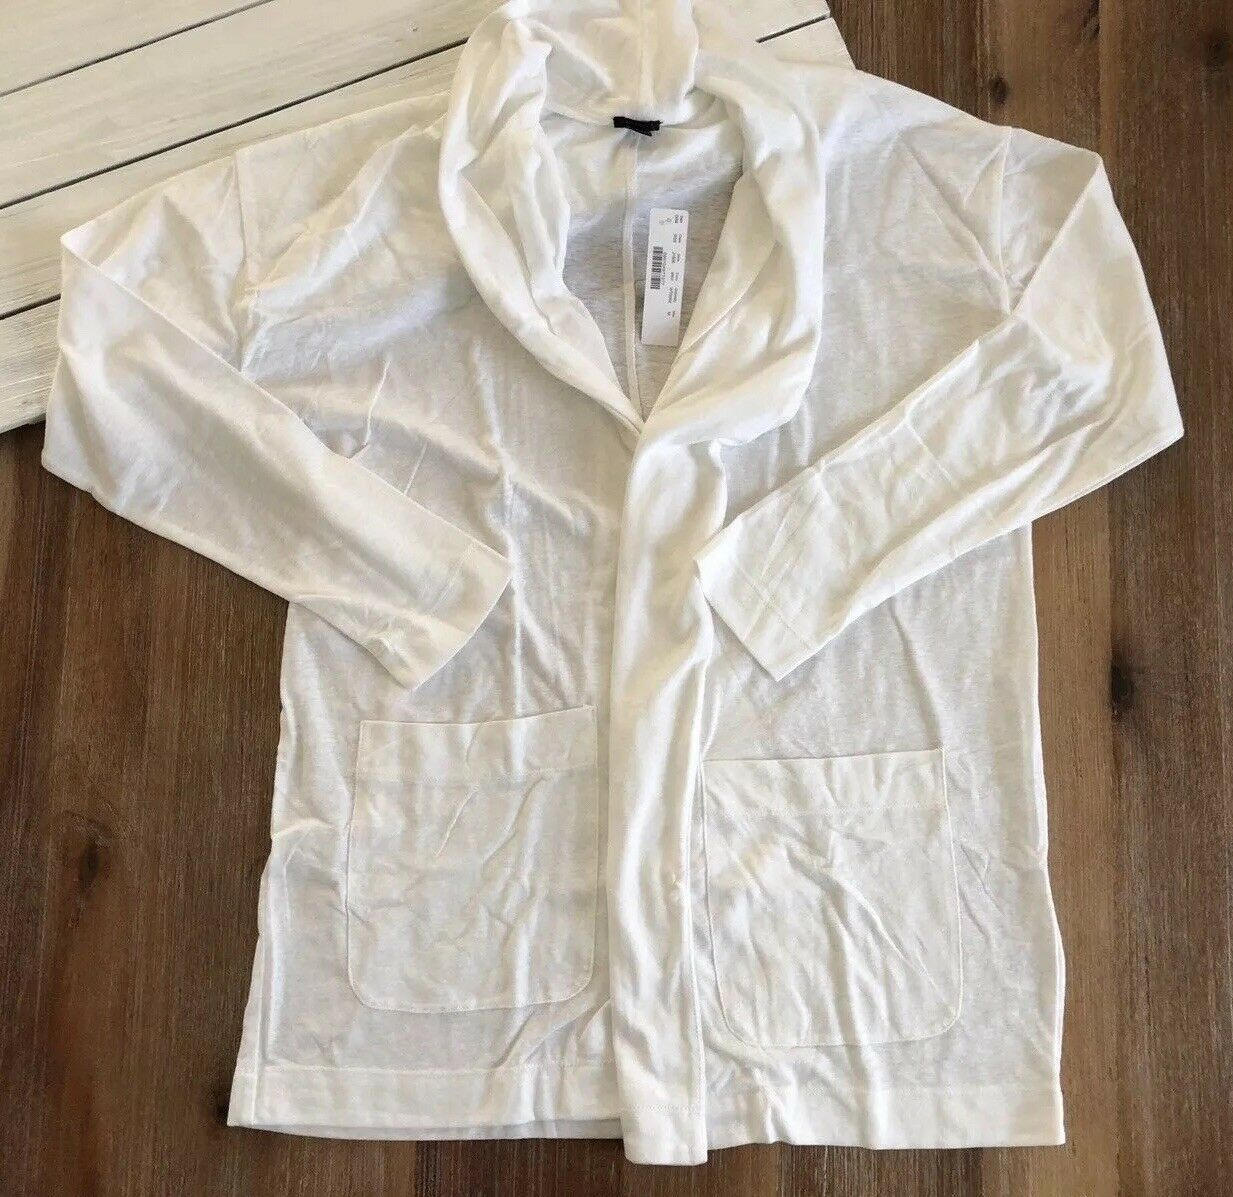 NWT J Crew Women's Slub Cotton Cardigan in White - M, XL